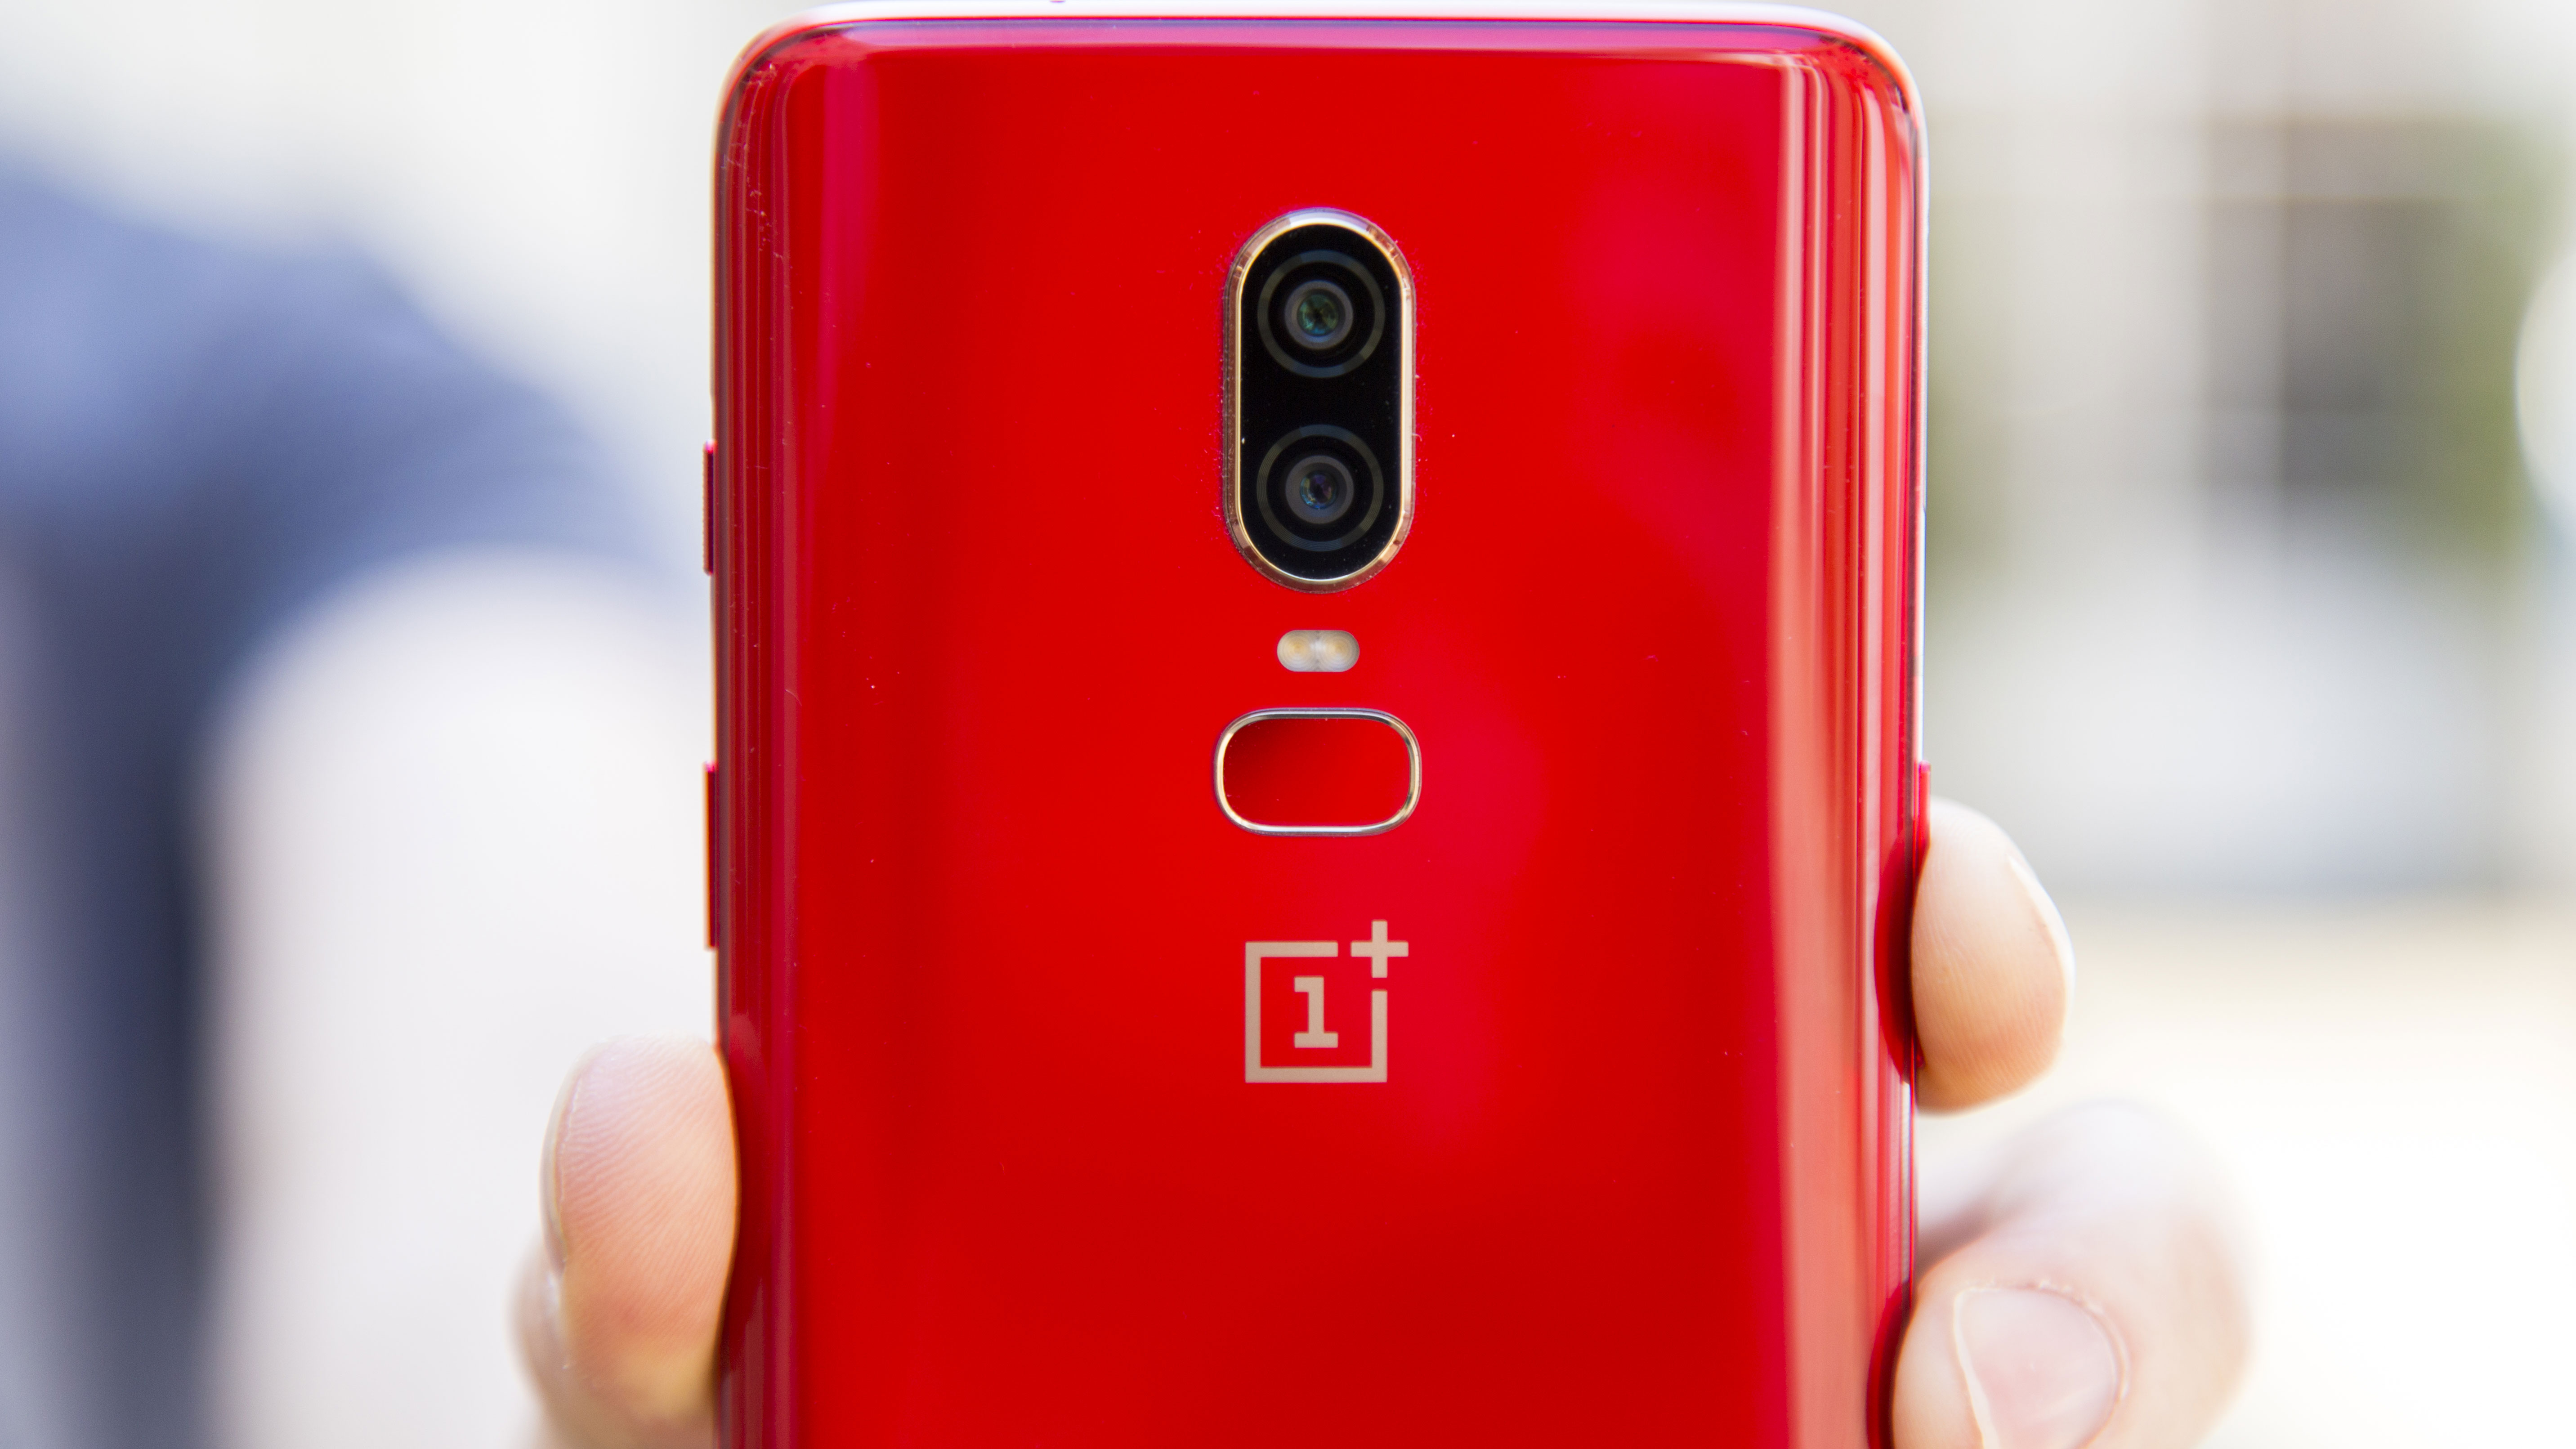 You can now buy the limited edition red OnePlus 6 | TechRadar